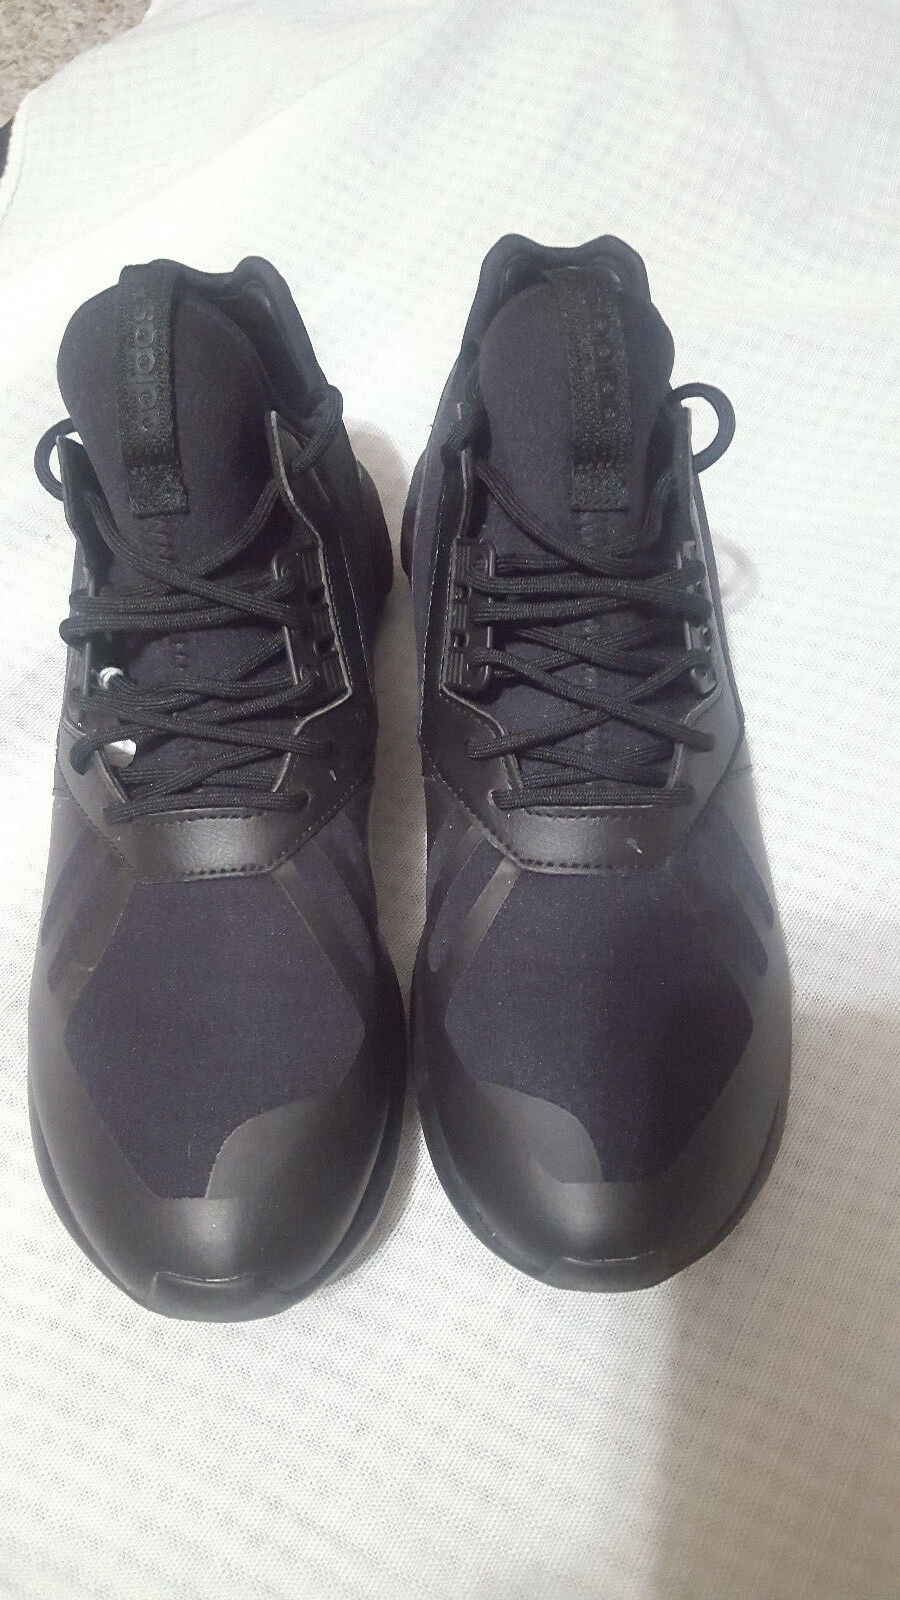 Adidas Original Tubular Runner Triple Black Q16465 Men's Shoes US Size 10 Black